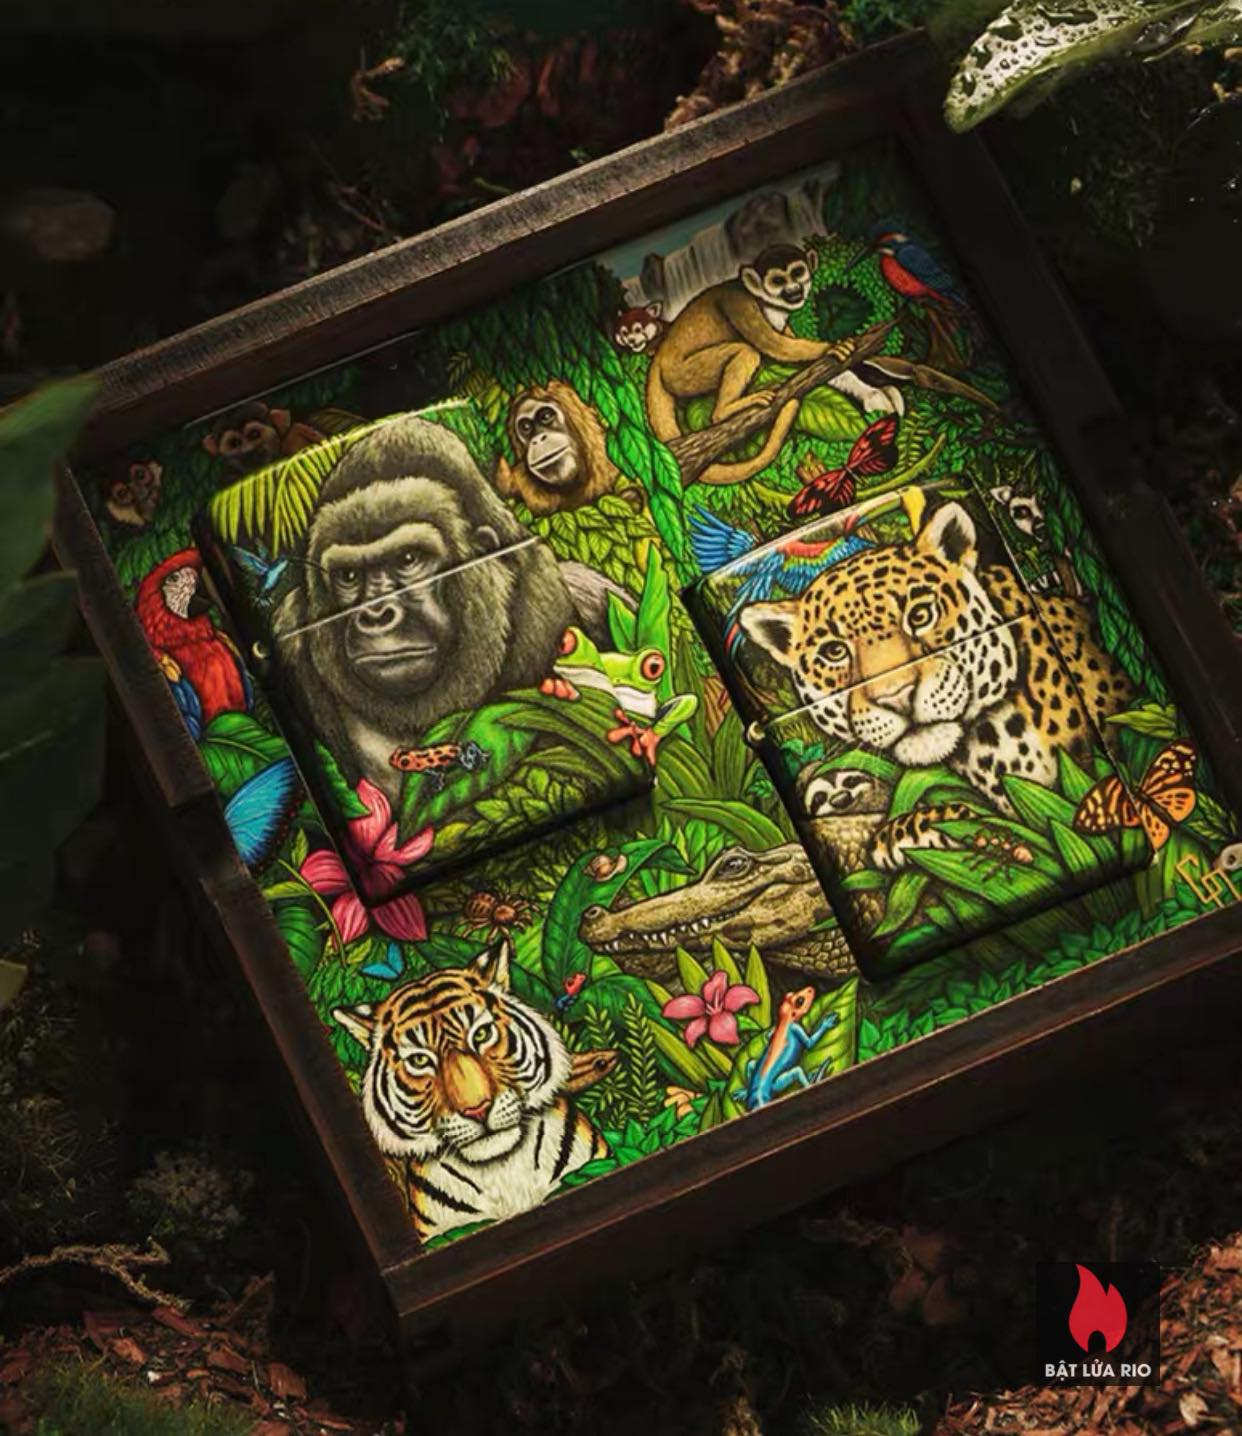 Zippo 49347 - Zippo Mysteries Of The Forest 25th Anniversary Collectible Set 50